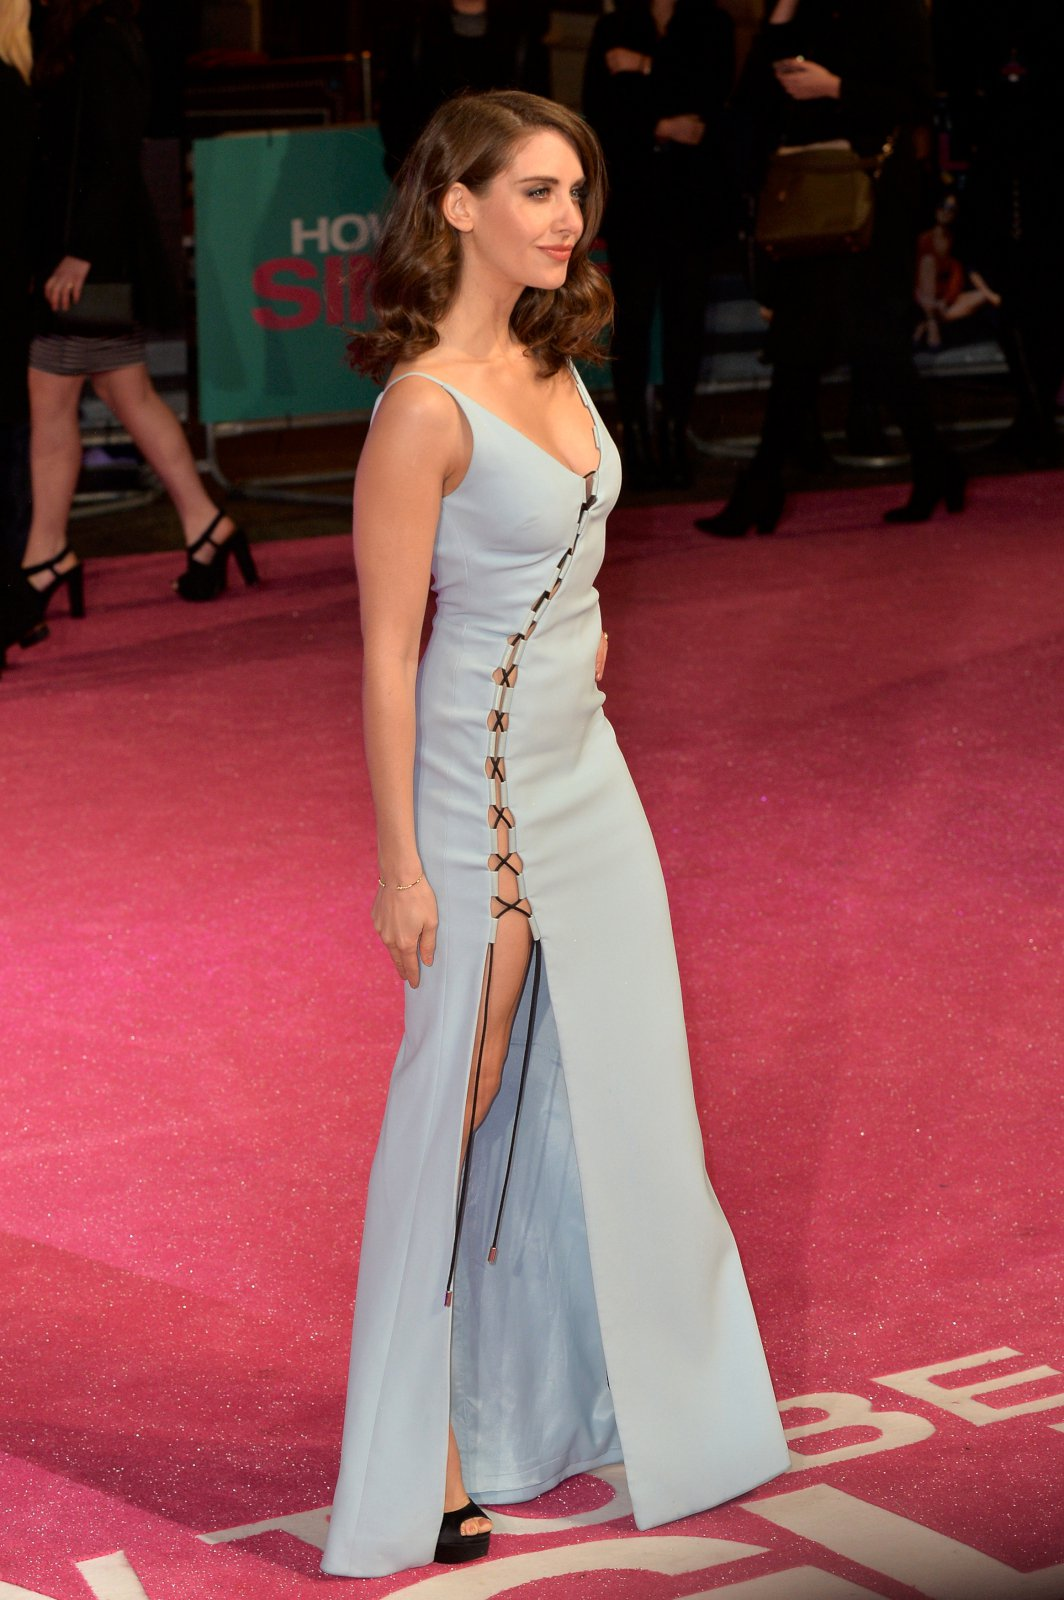 Pin by All Fashions Today on Alison Brie   Alison brie